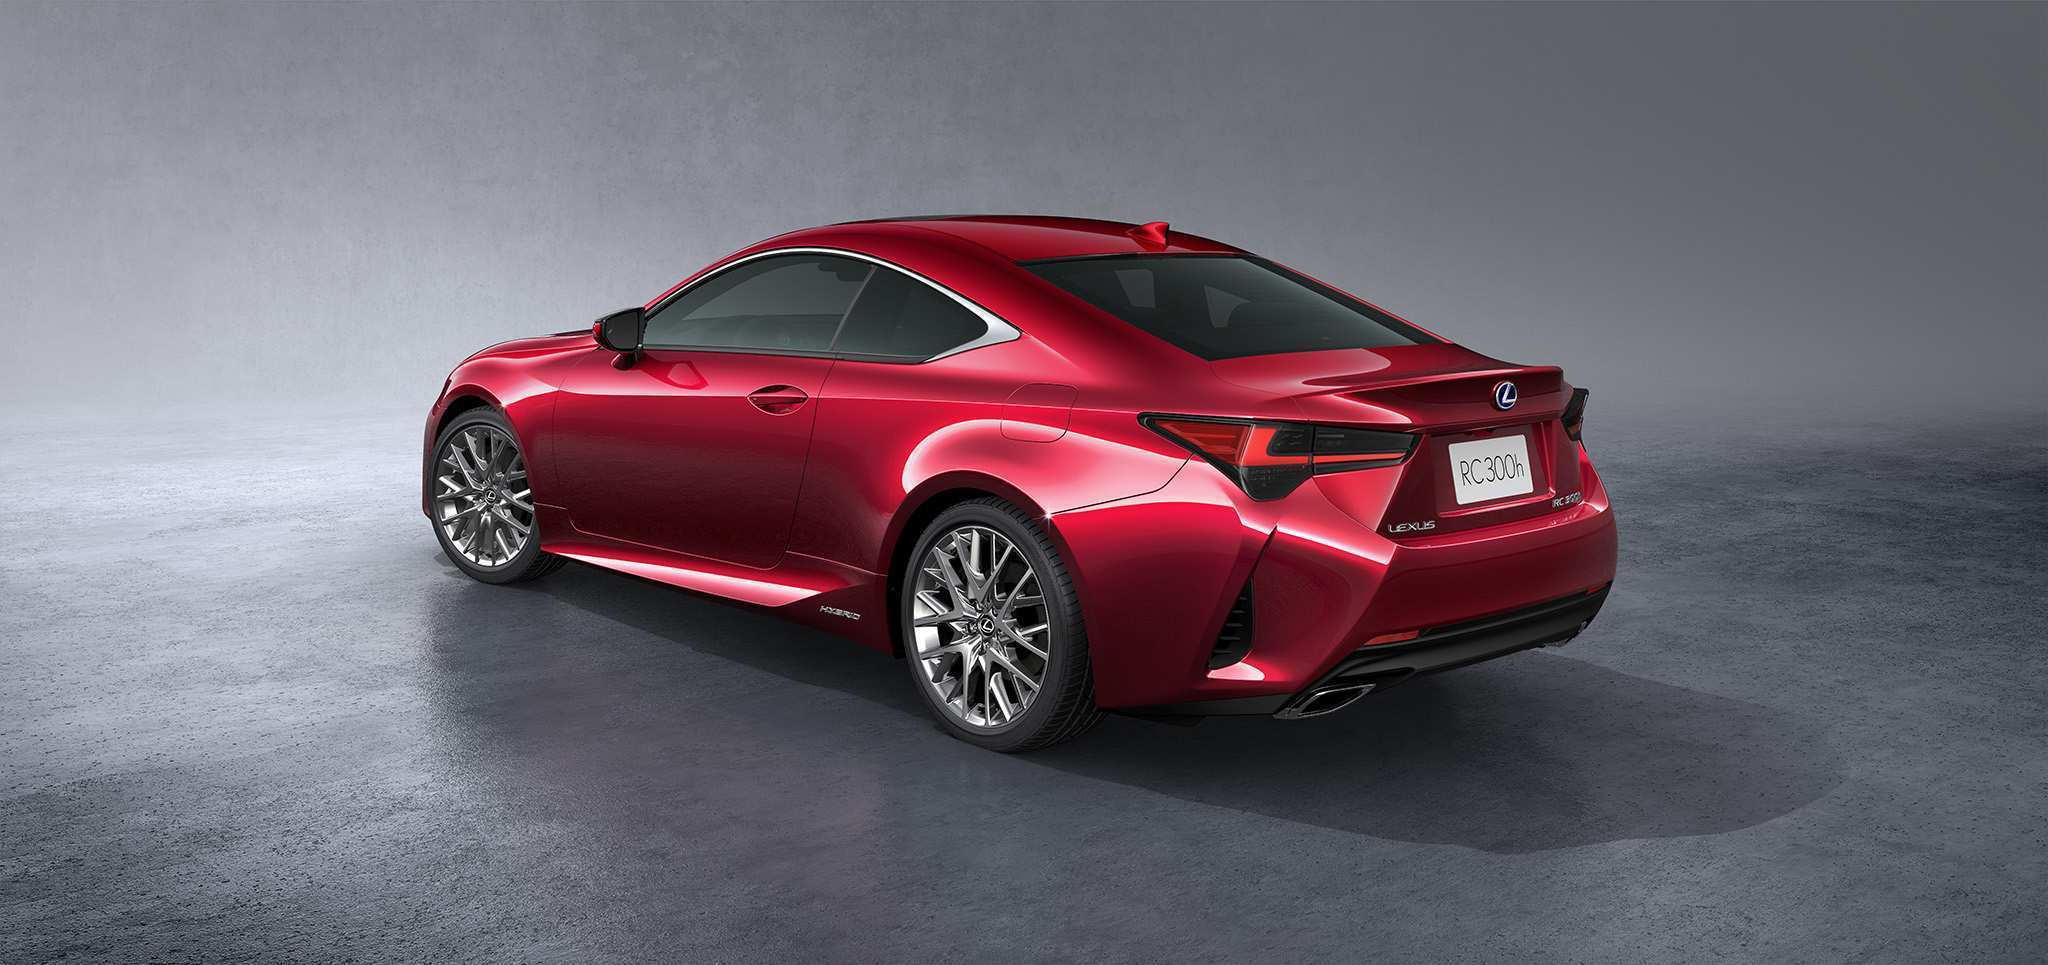 91 Gallery of 2019 Lexus Rc Release Date with 2019 Lexus Rc